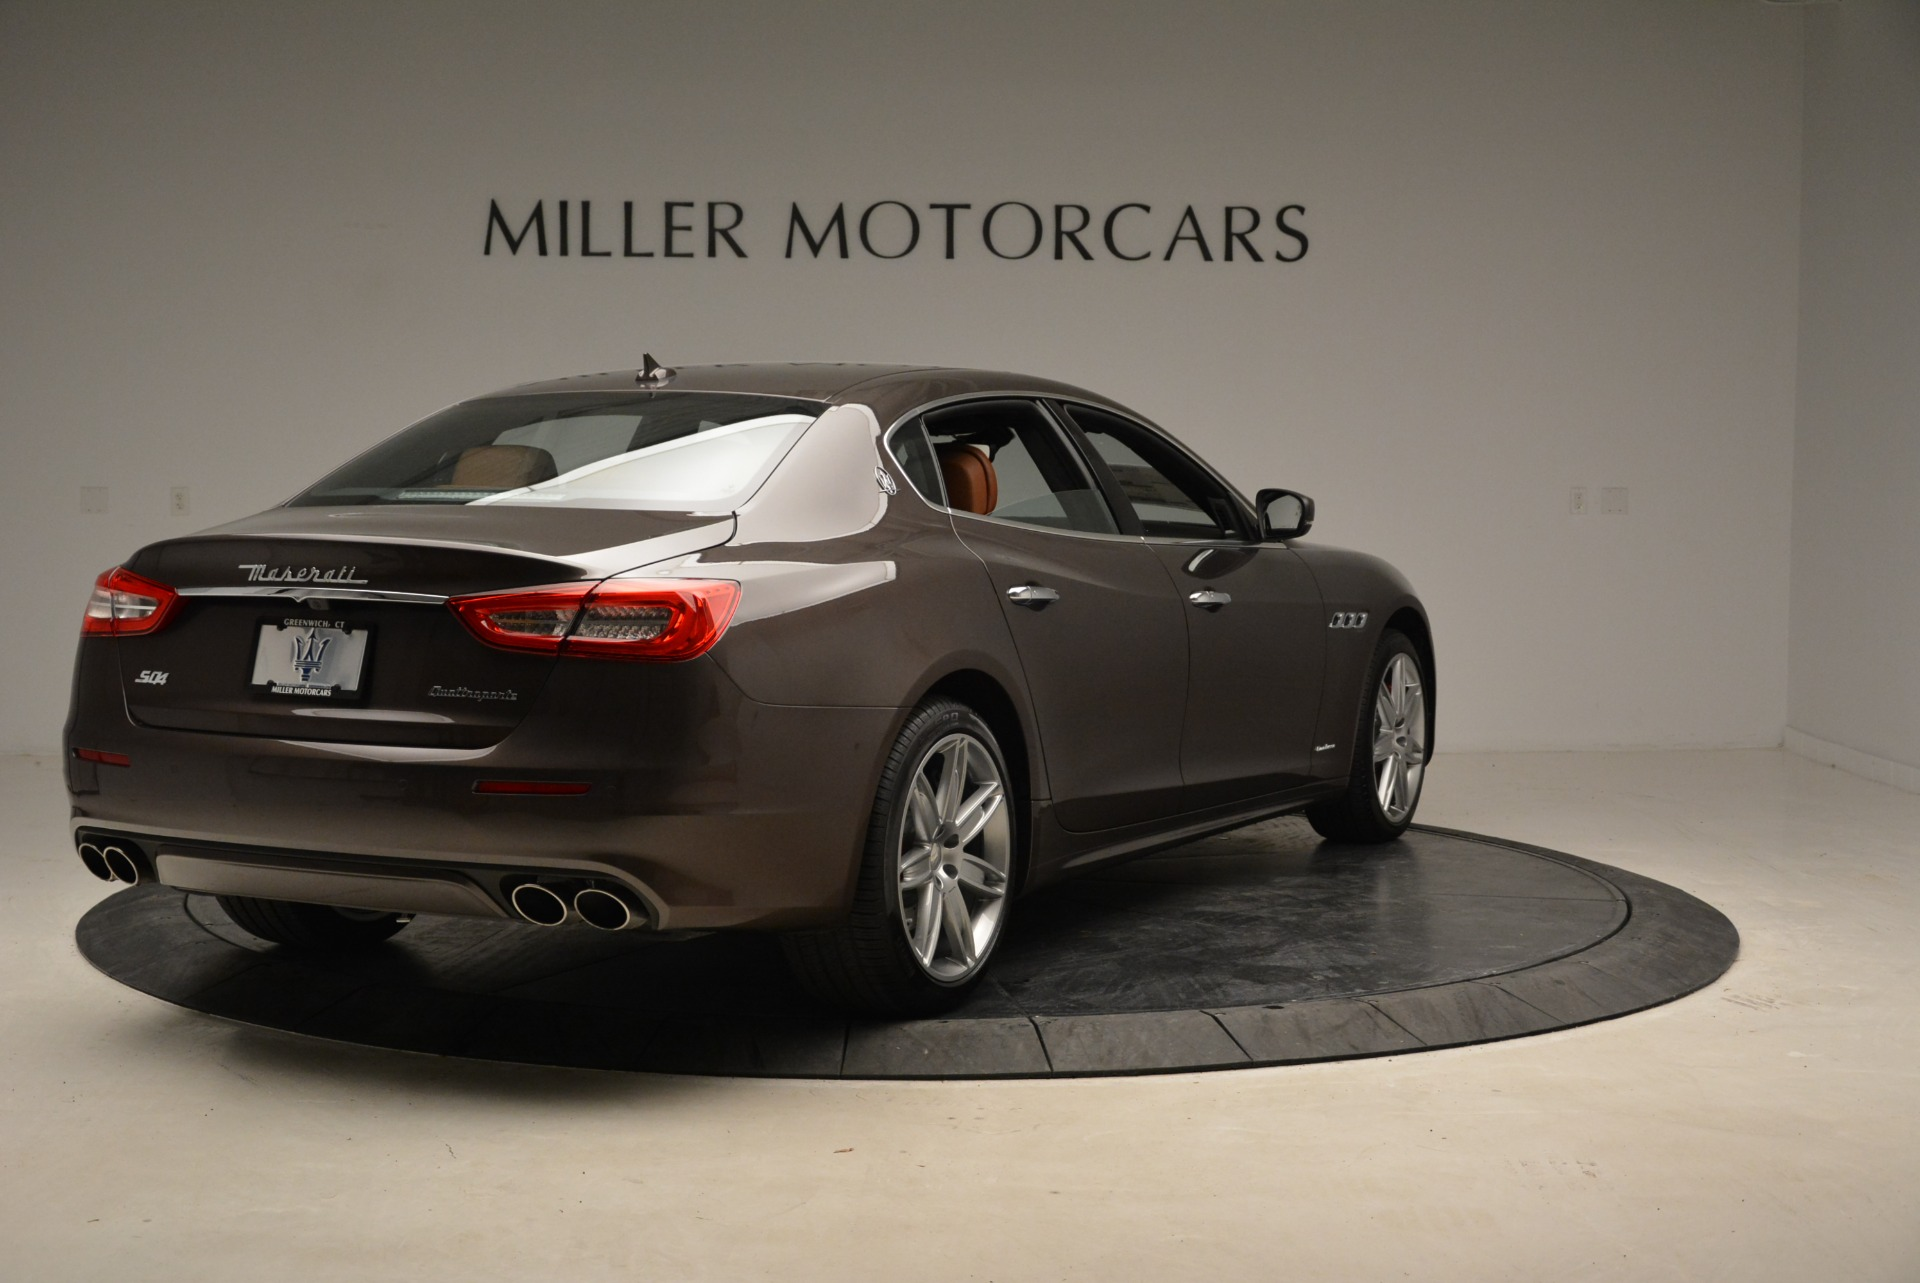 New 2018 Maserati Quattroporte S Q4 GranLusso For Sale In Greenwich, CT 1926_p8